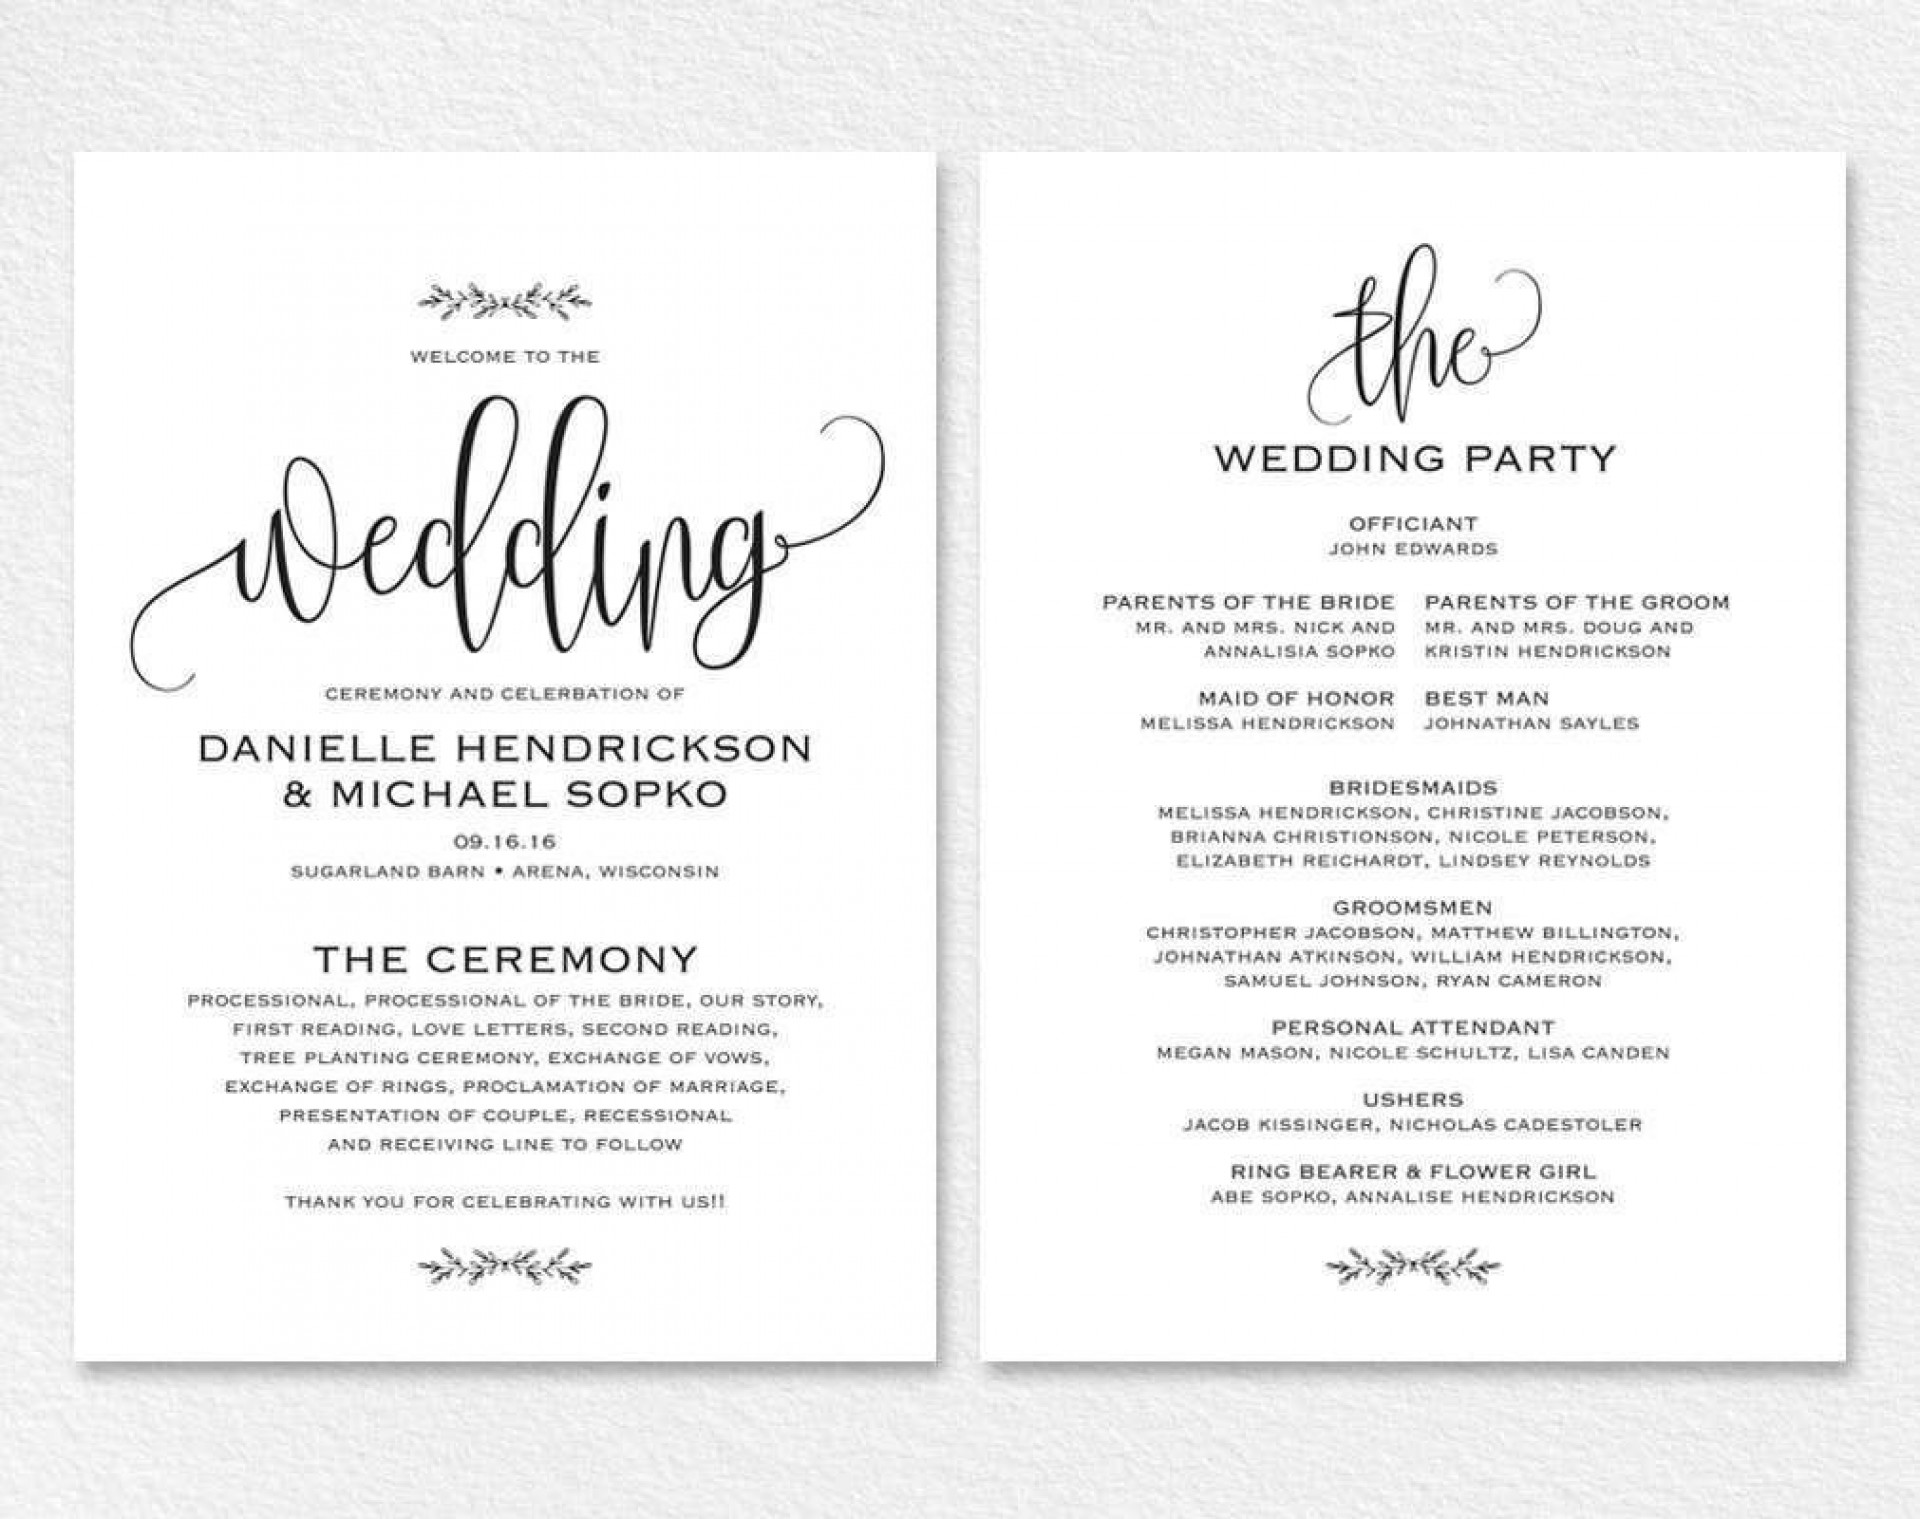 000 Magnificent Free Downloadable Wedding Program Template Idea  Templates That Can Be Printed Printable Fall Reception1920